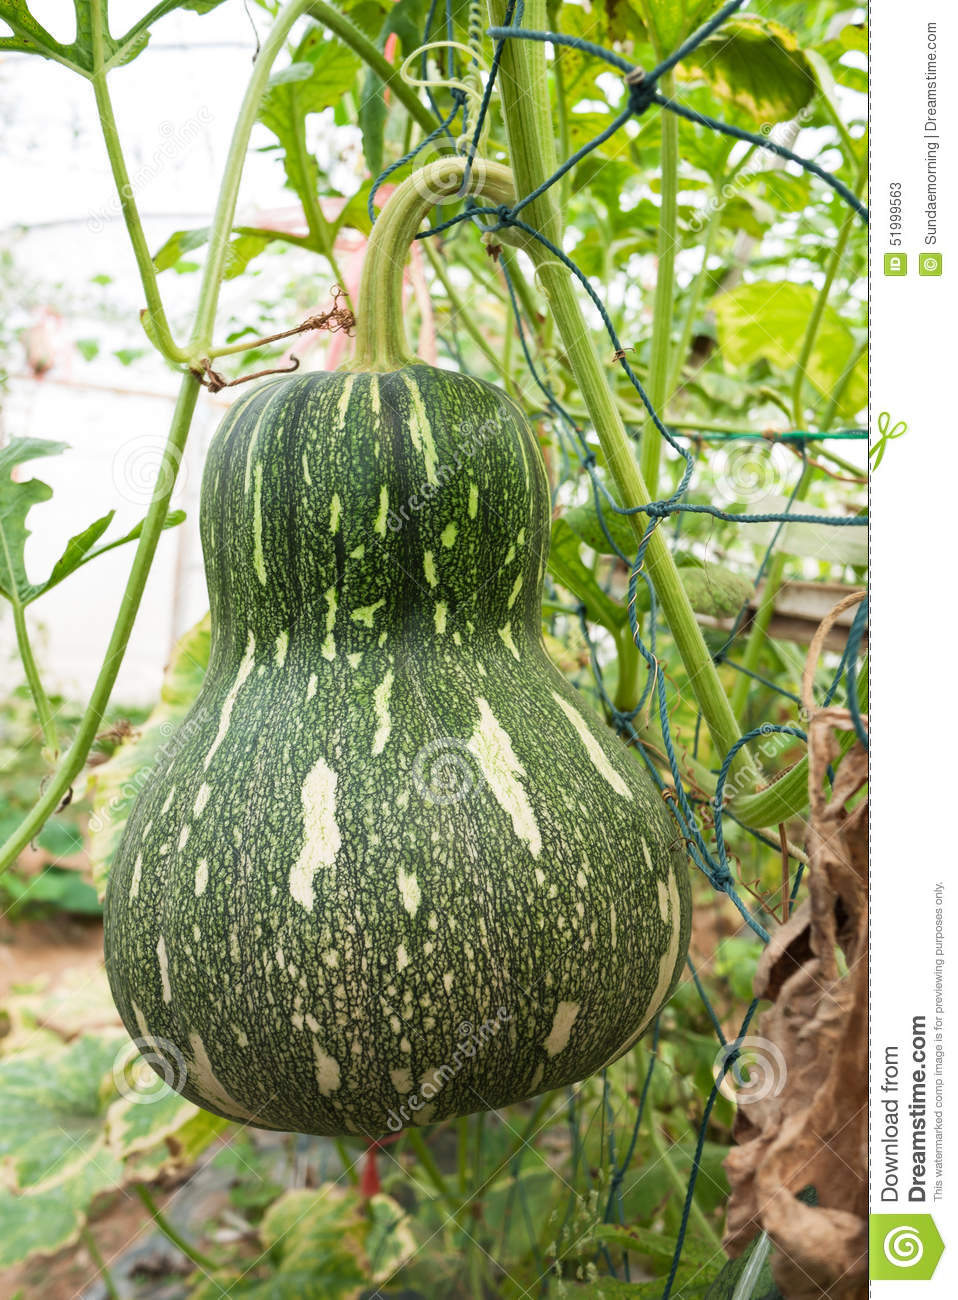 Squash Crop In Fruiting Stage Stock Image